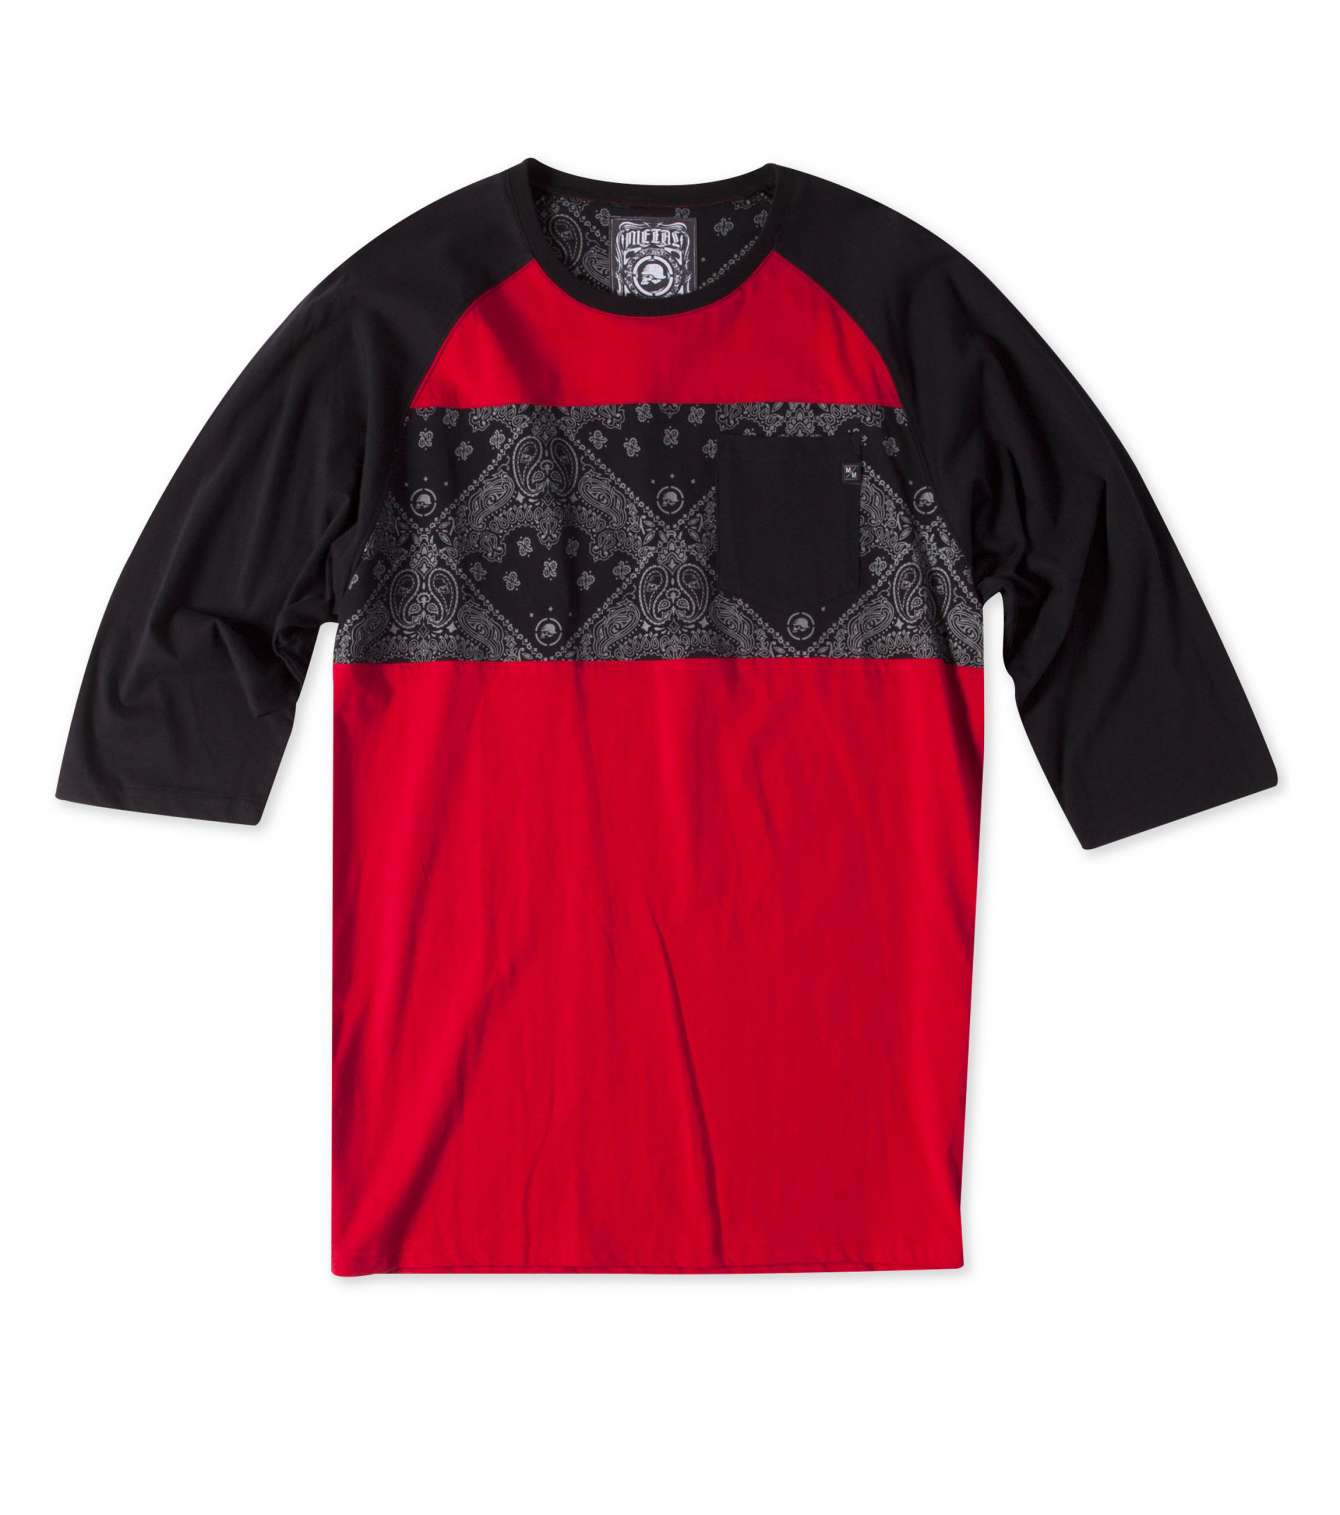 METAL MULISHA RAGS TO RICHES KNIT RED/BLK